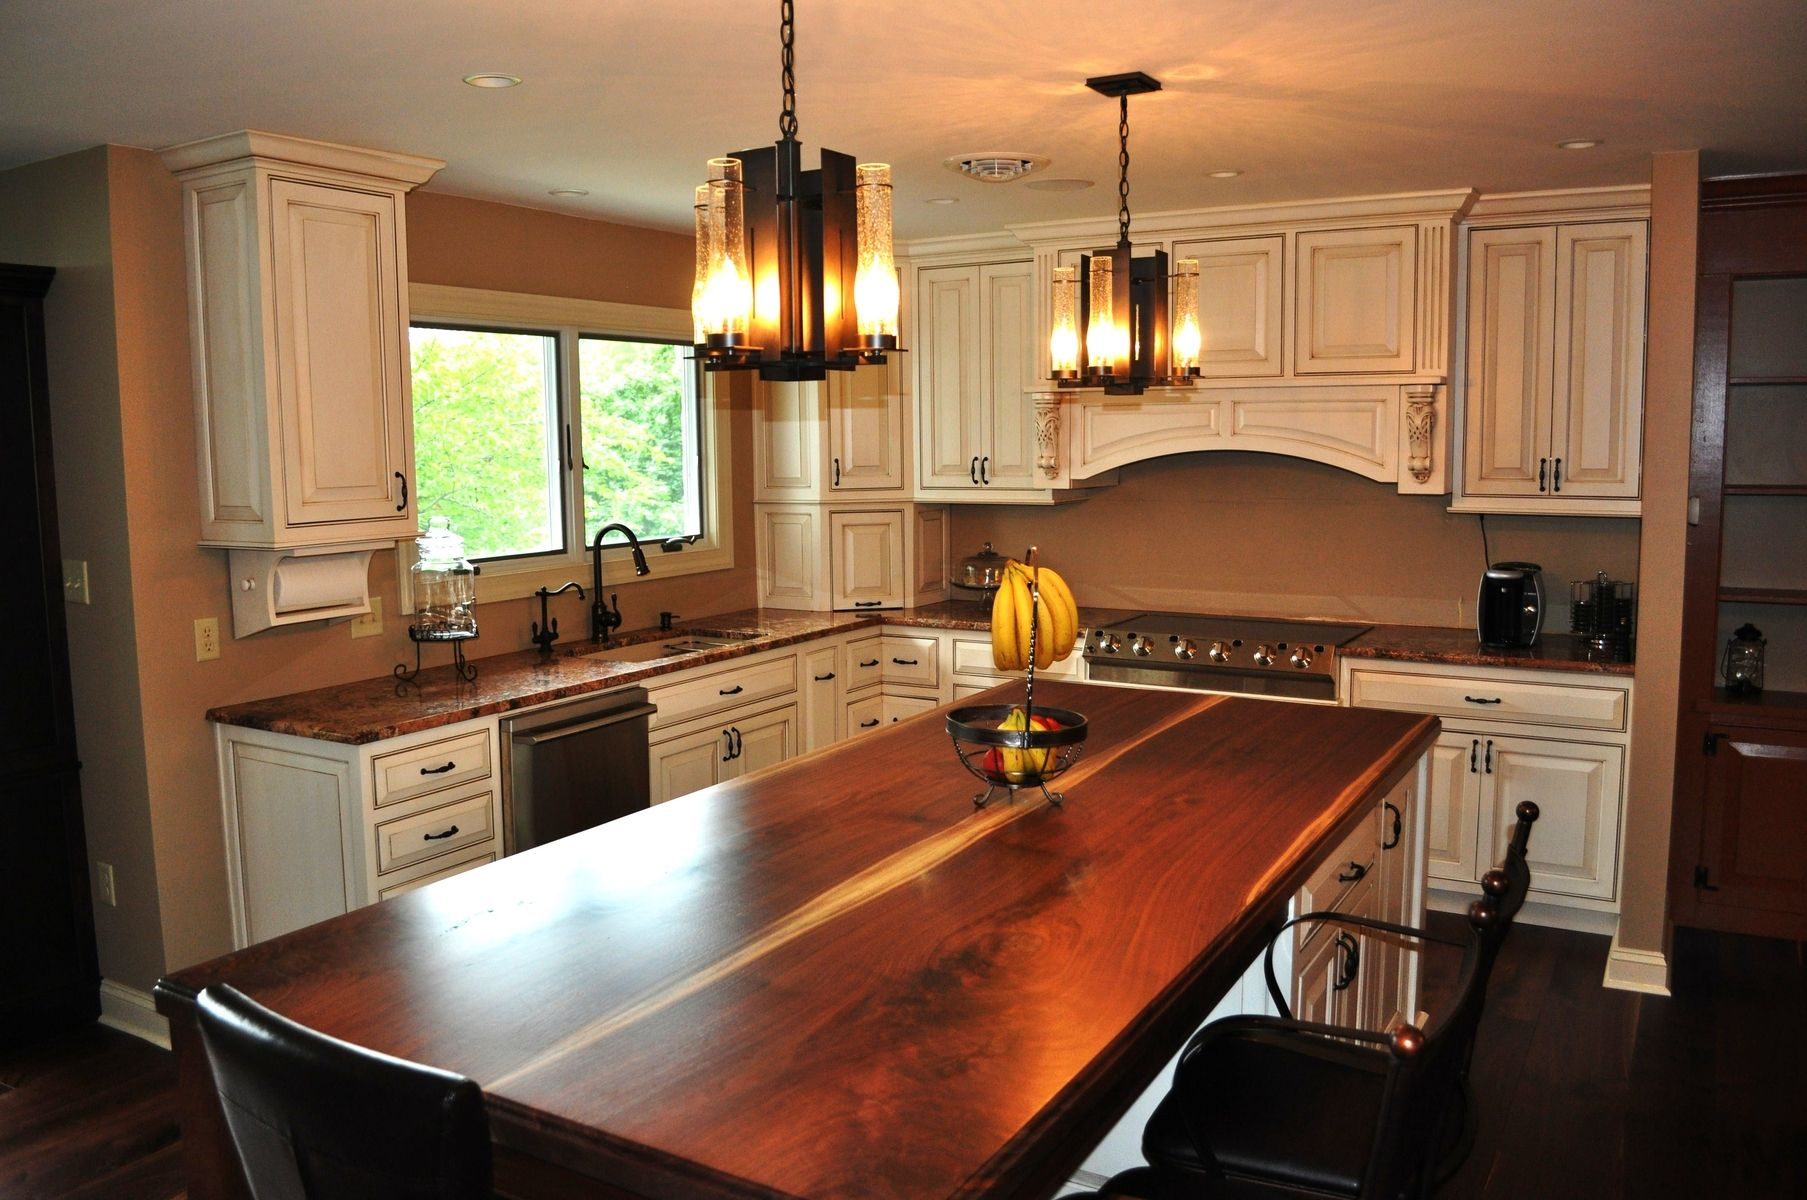 Custom french country style kitchen by london grove for How to style a kitchen